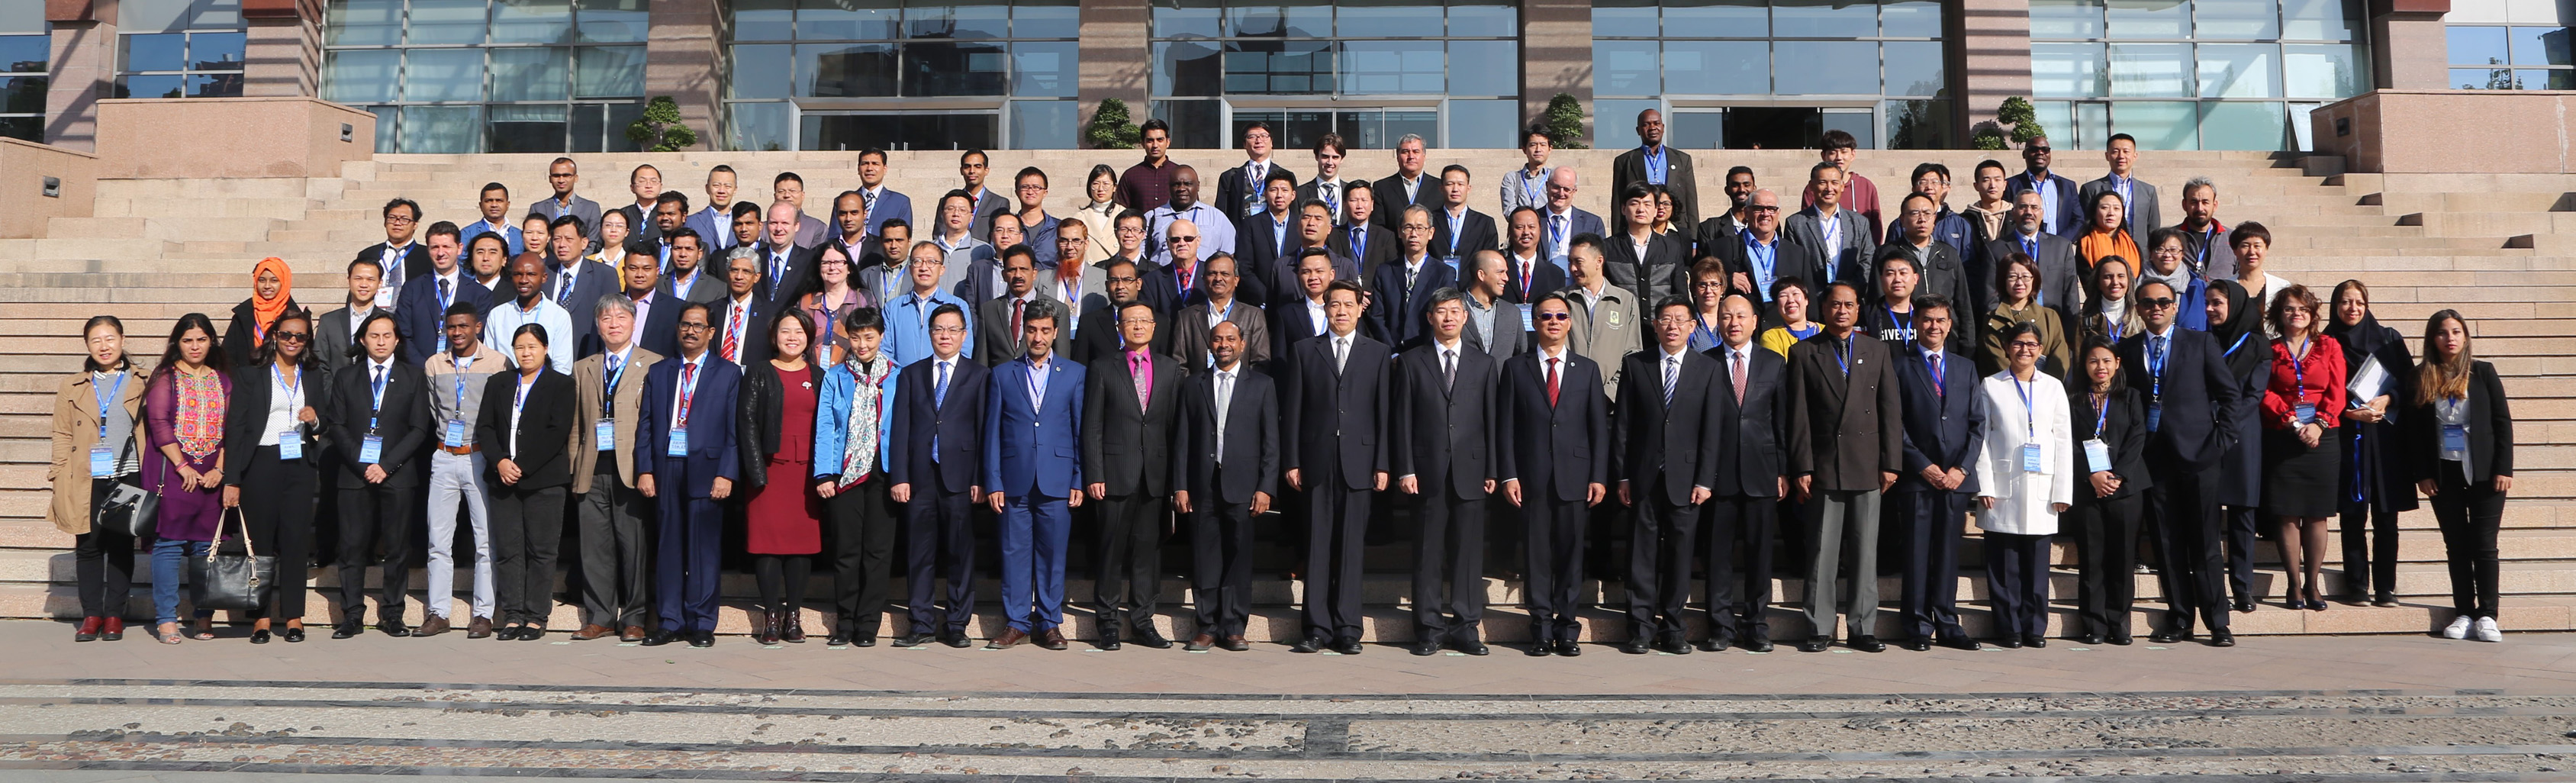 Participants of the UN-SPIDER conference in Beijing.